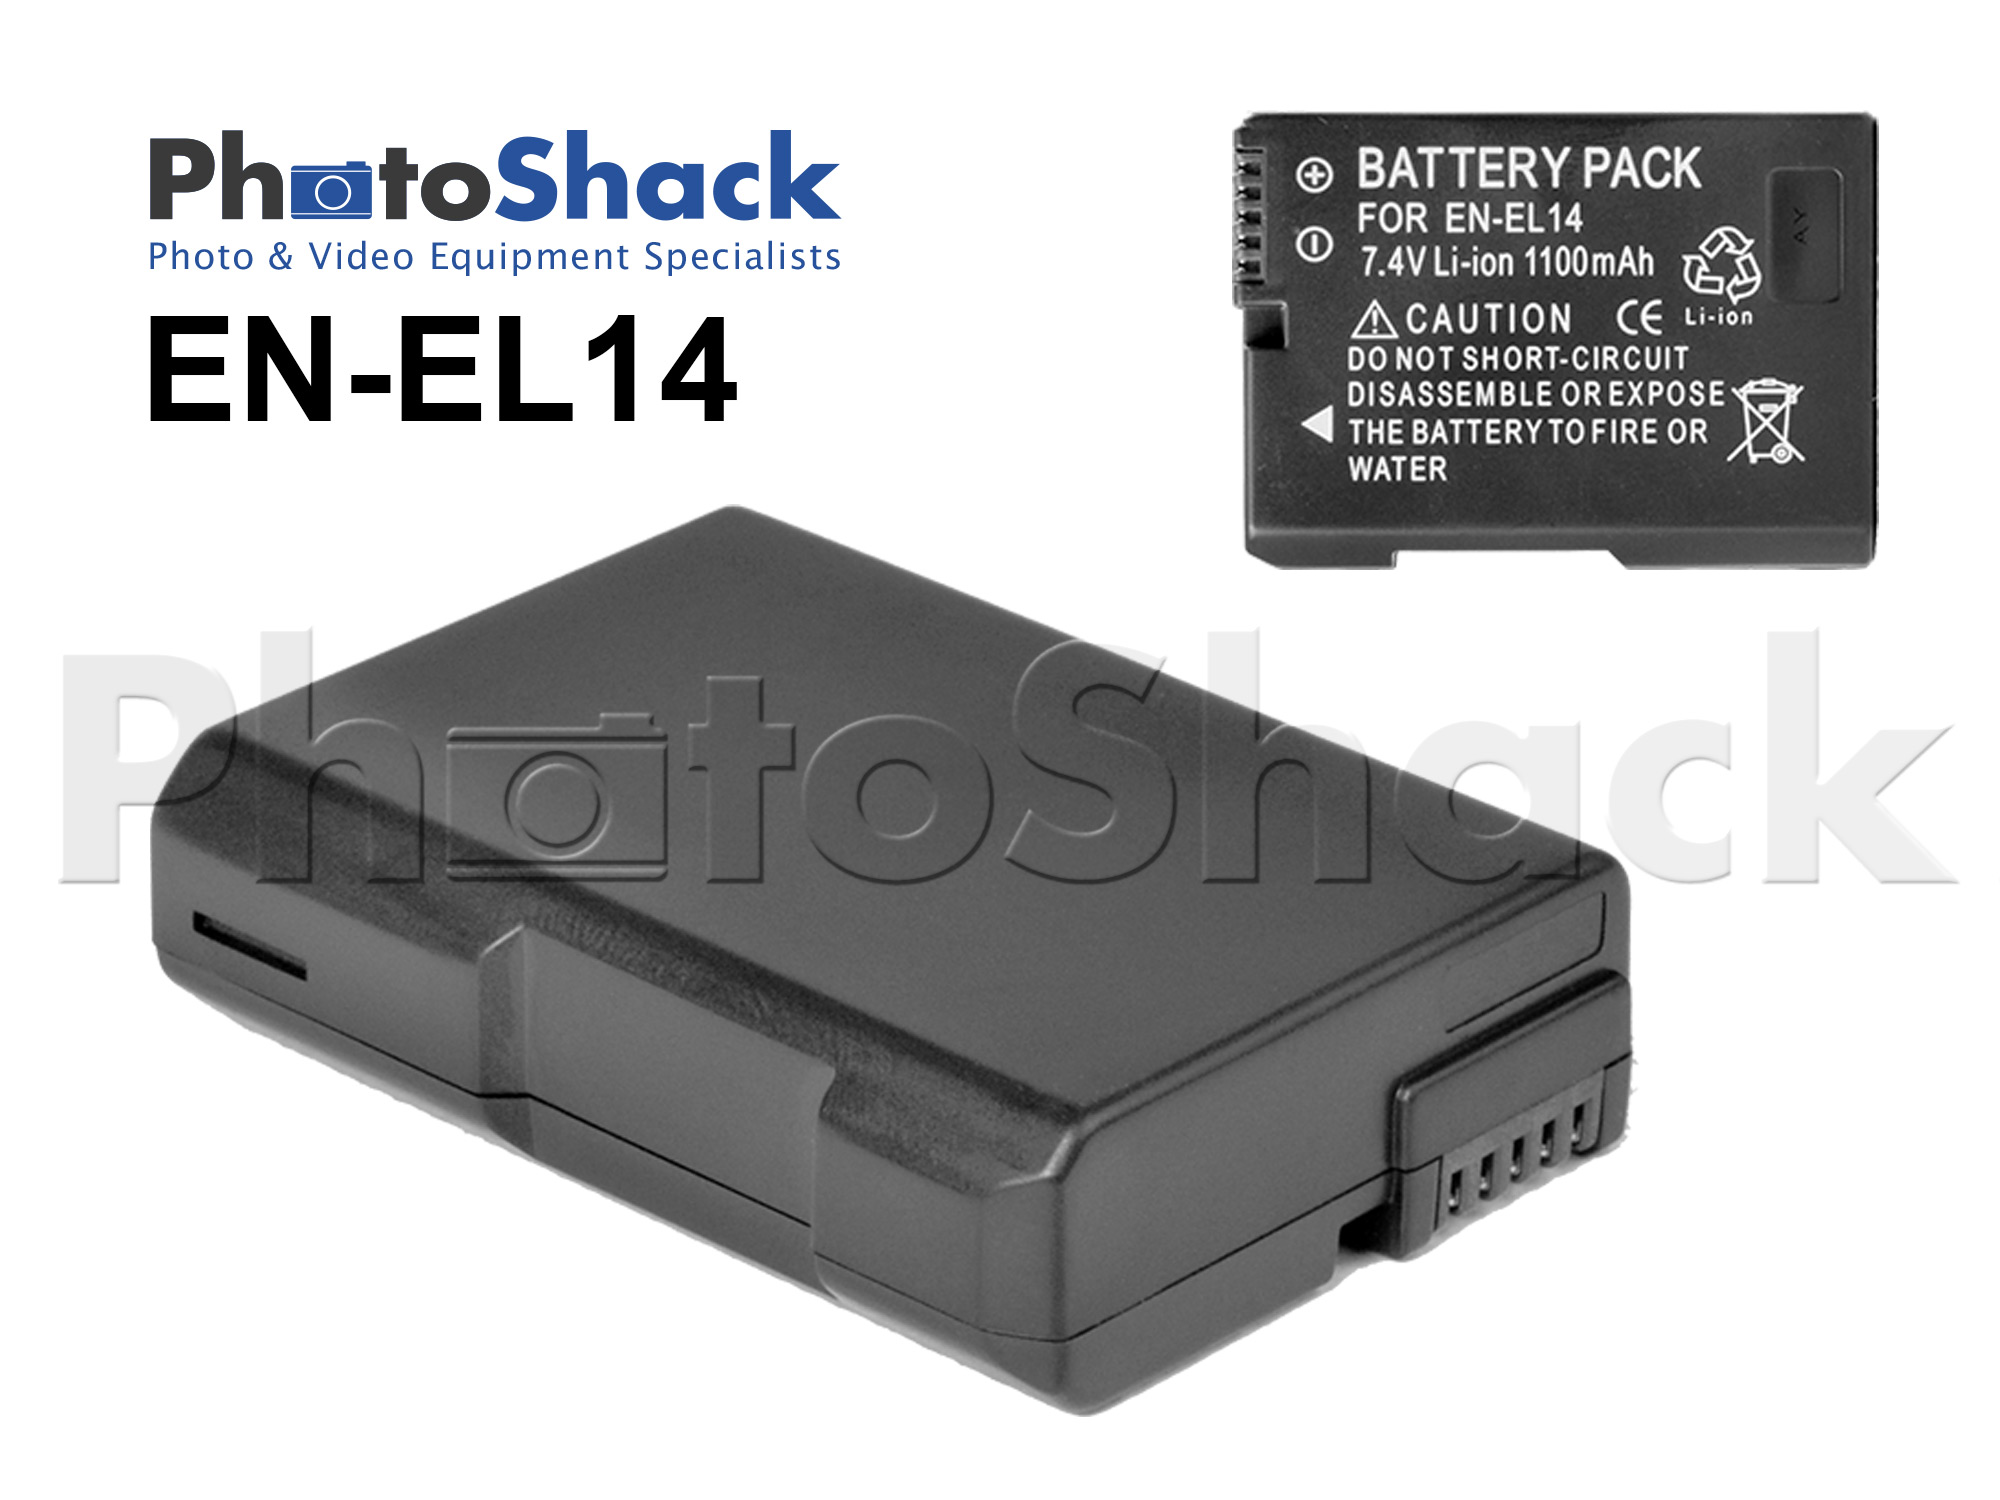 ENEL14 Rechargeable Battery for Nikon Cameras